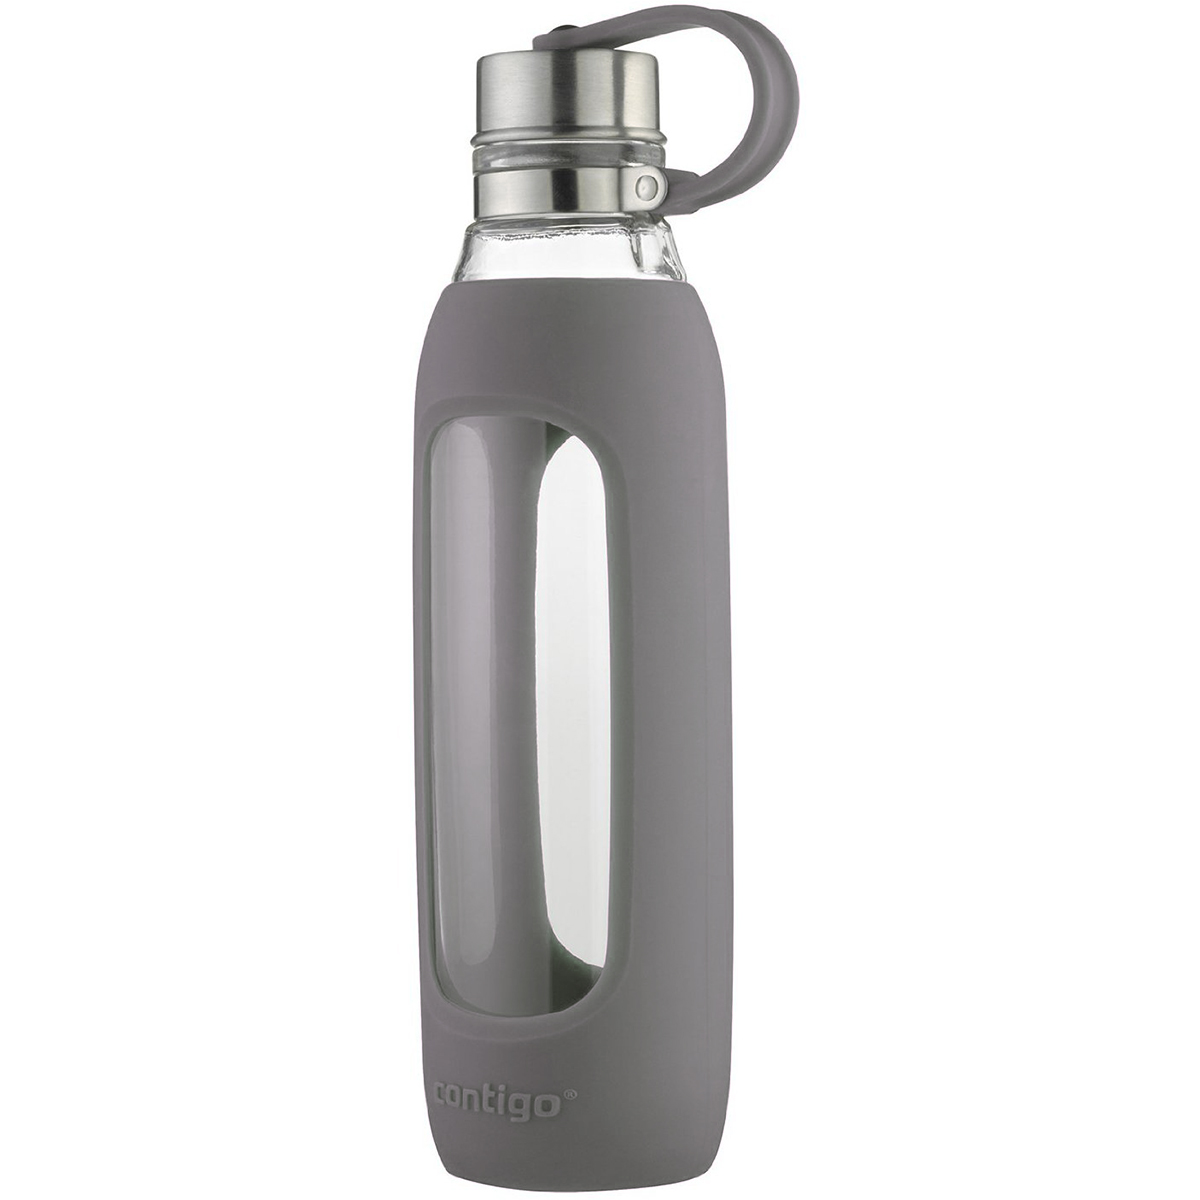 Purity Glass Water Bottle with Tethered Lid Contigo 20 oz